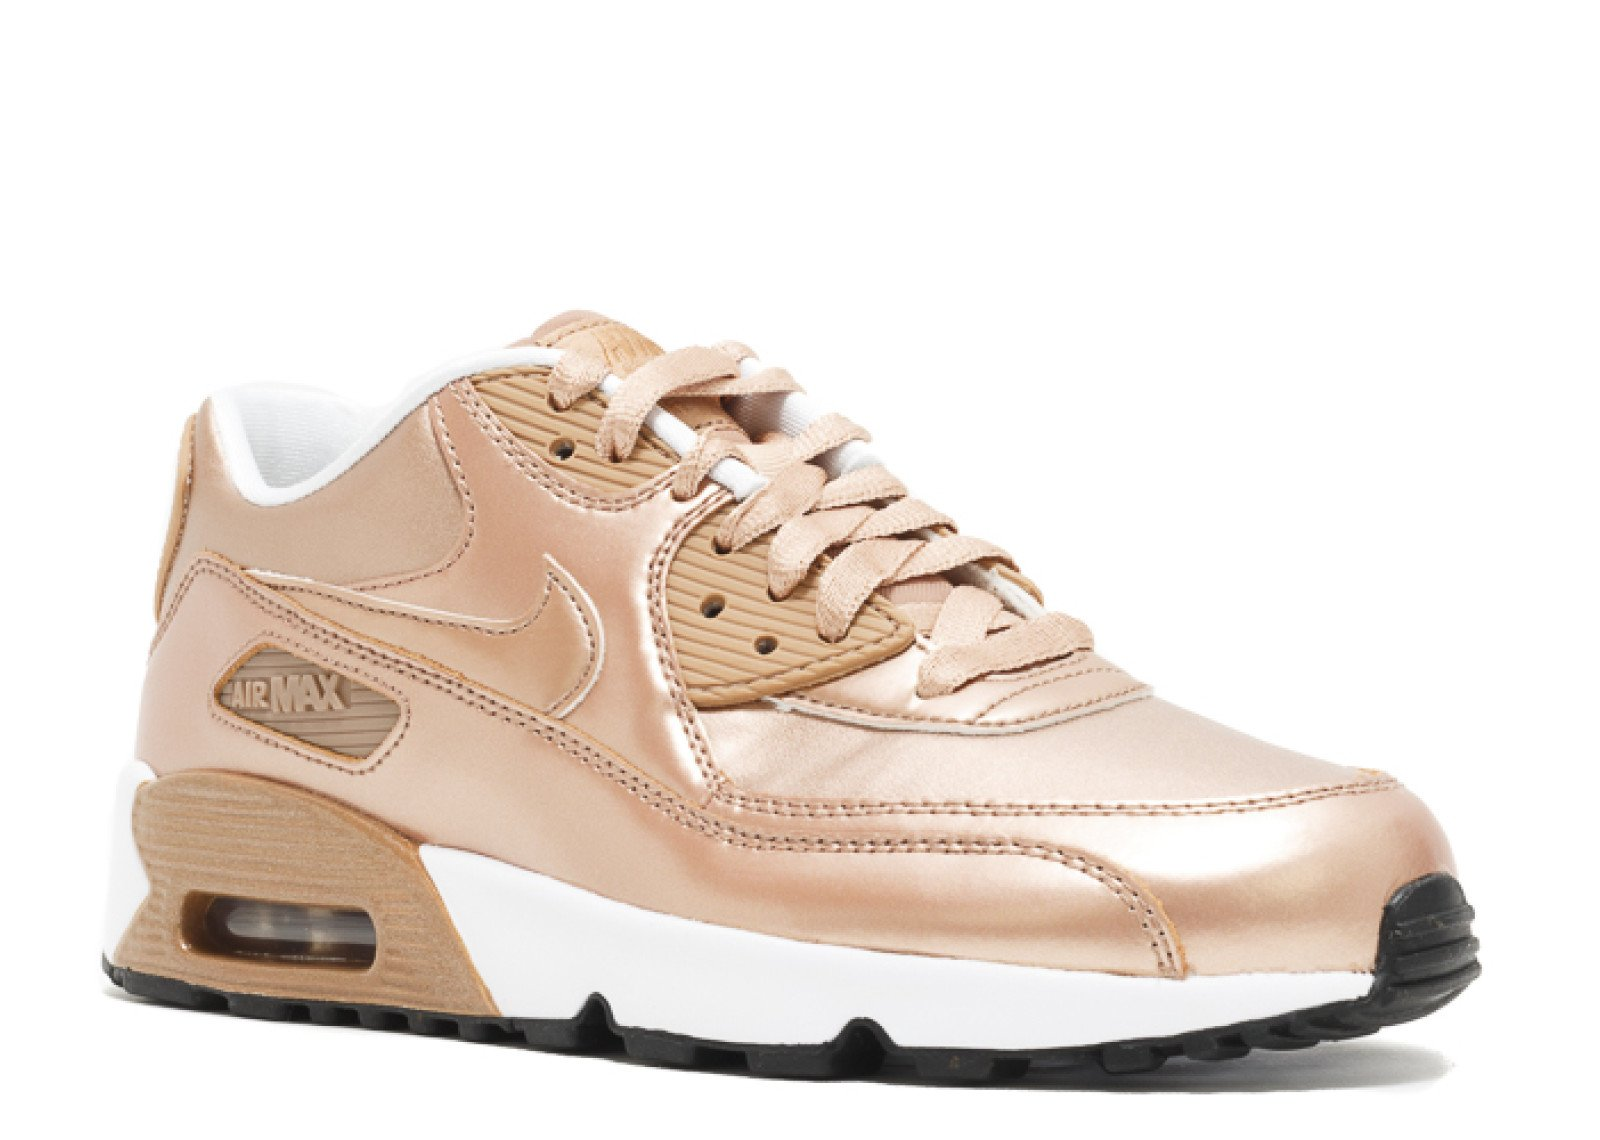 0733e0a1d102 Galleon - NIKE Air Max 90 SE Big Kids Leather Metallic Red Bronze  859633-900 (Size  5.5Y)